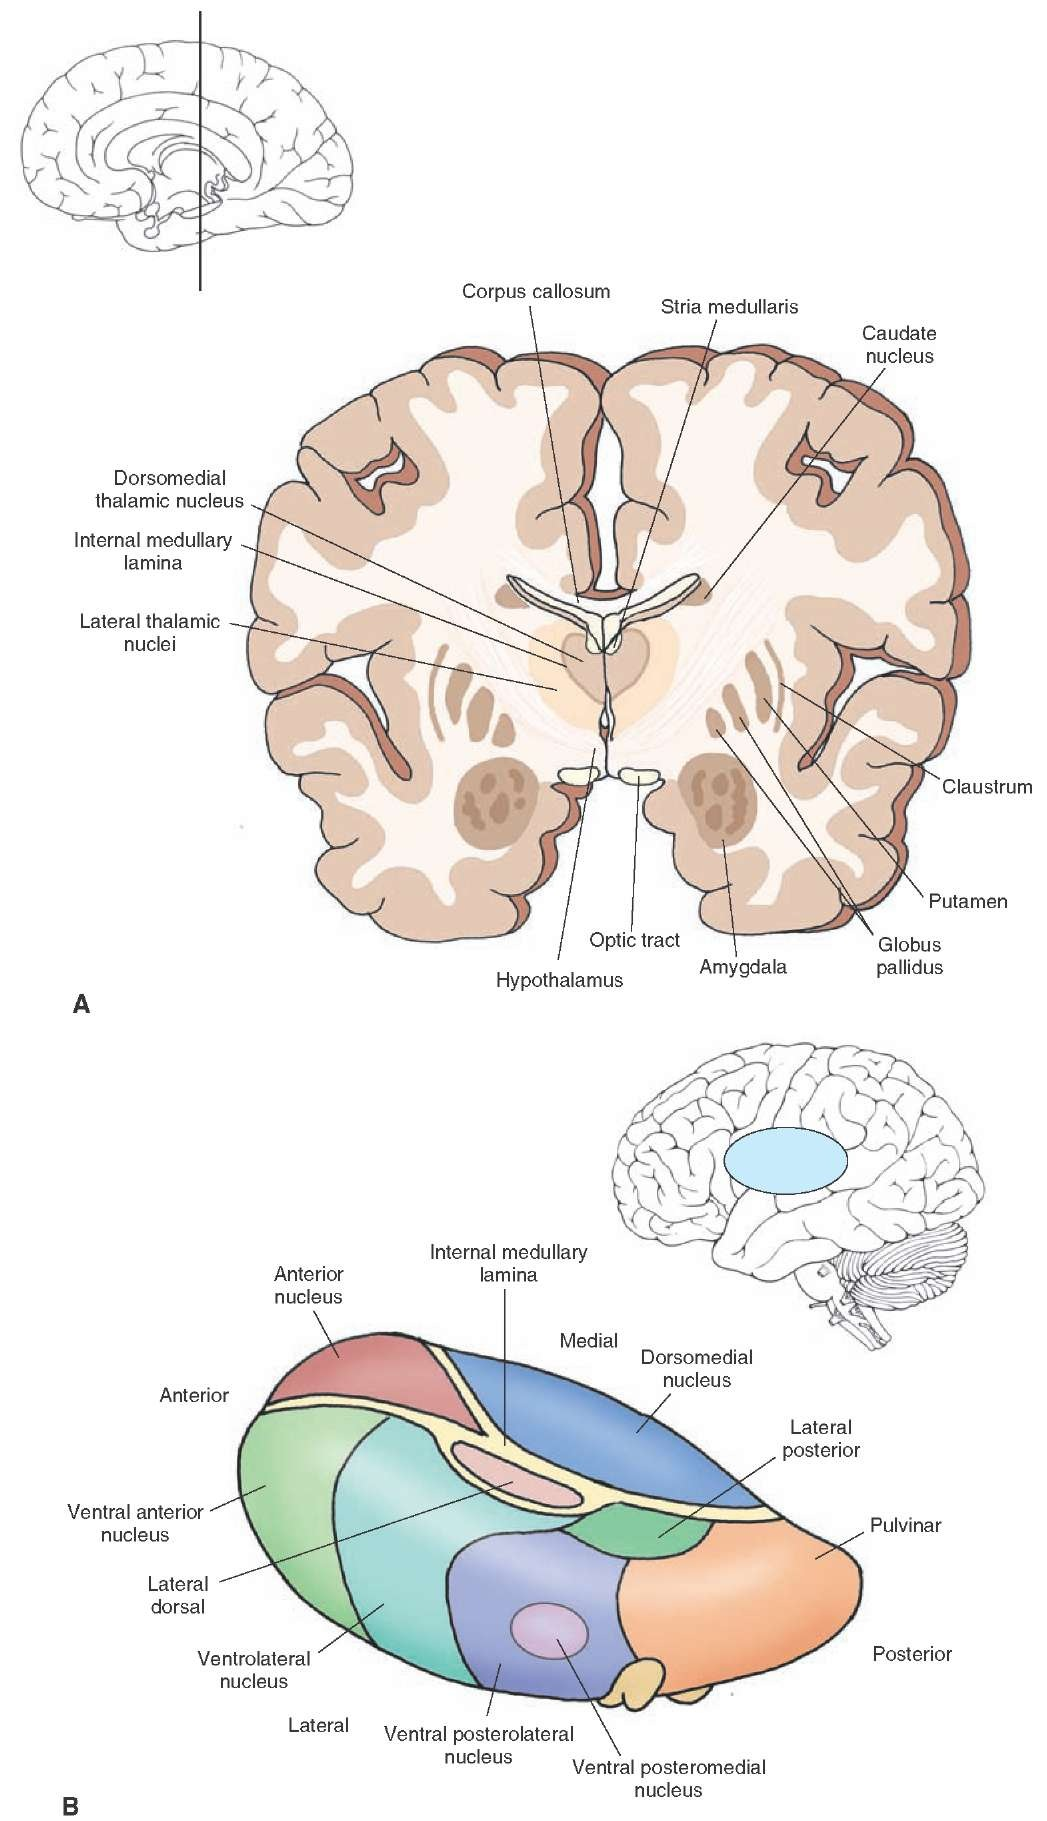 Arrangement of thalamic nuclei. (A) Cross section of the brain taken through the level of the anterior third of the diencephalon. The cross section indicates the relationship of the diencephalon to the internal capsule and basal ganglia as well as the position occupied by the amygdala in the temporal lobe. The inset indicates the approximate cut of the section. (B) The relative positions of the thalamic nuclei to one another and the position of the thalamus within the brain.